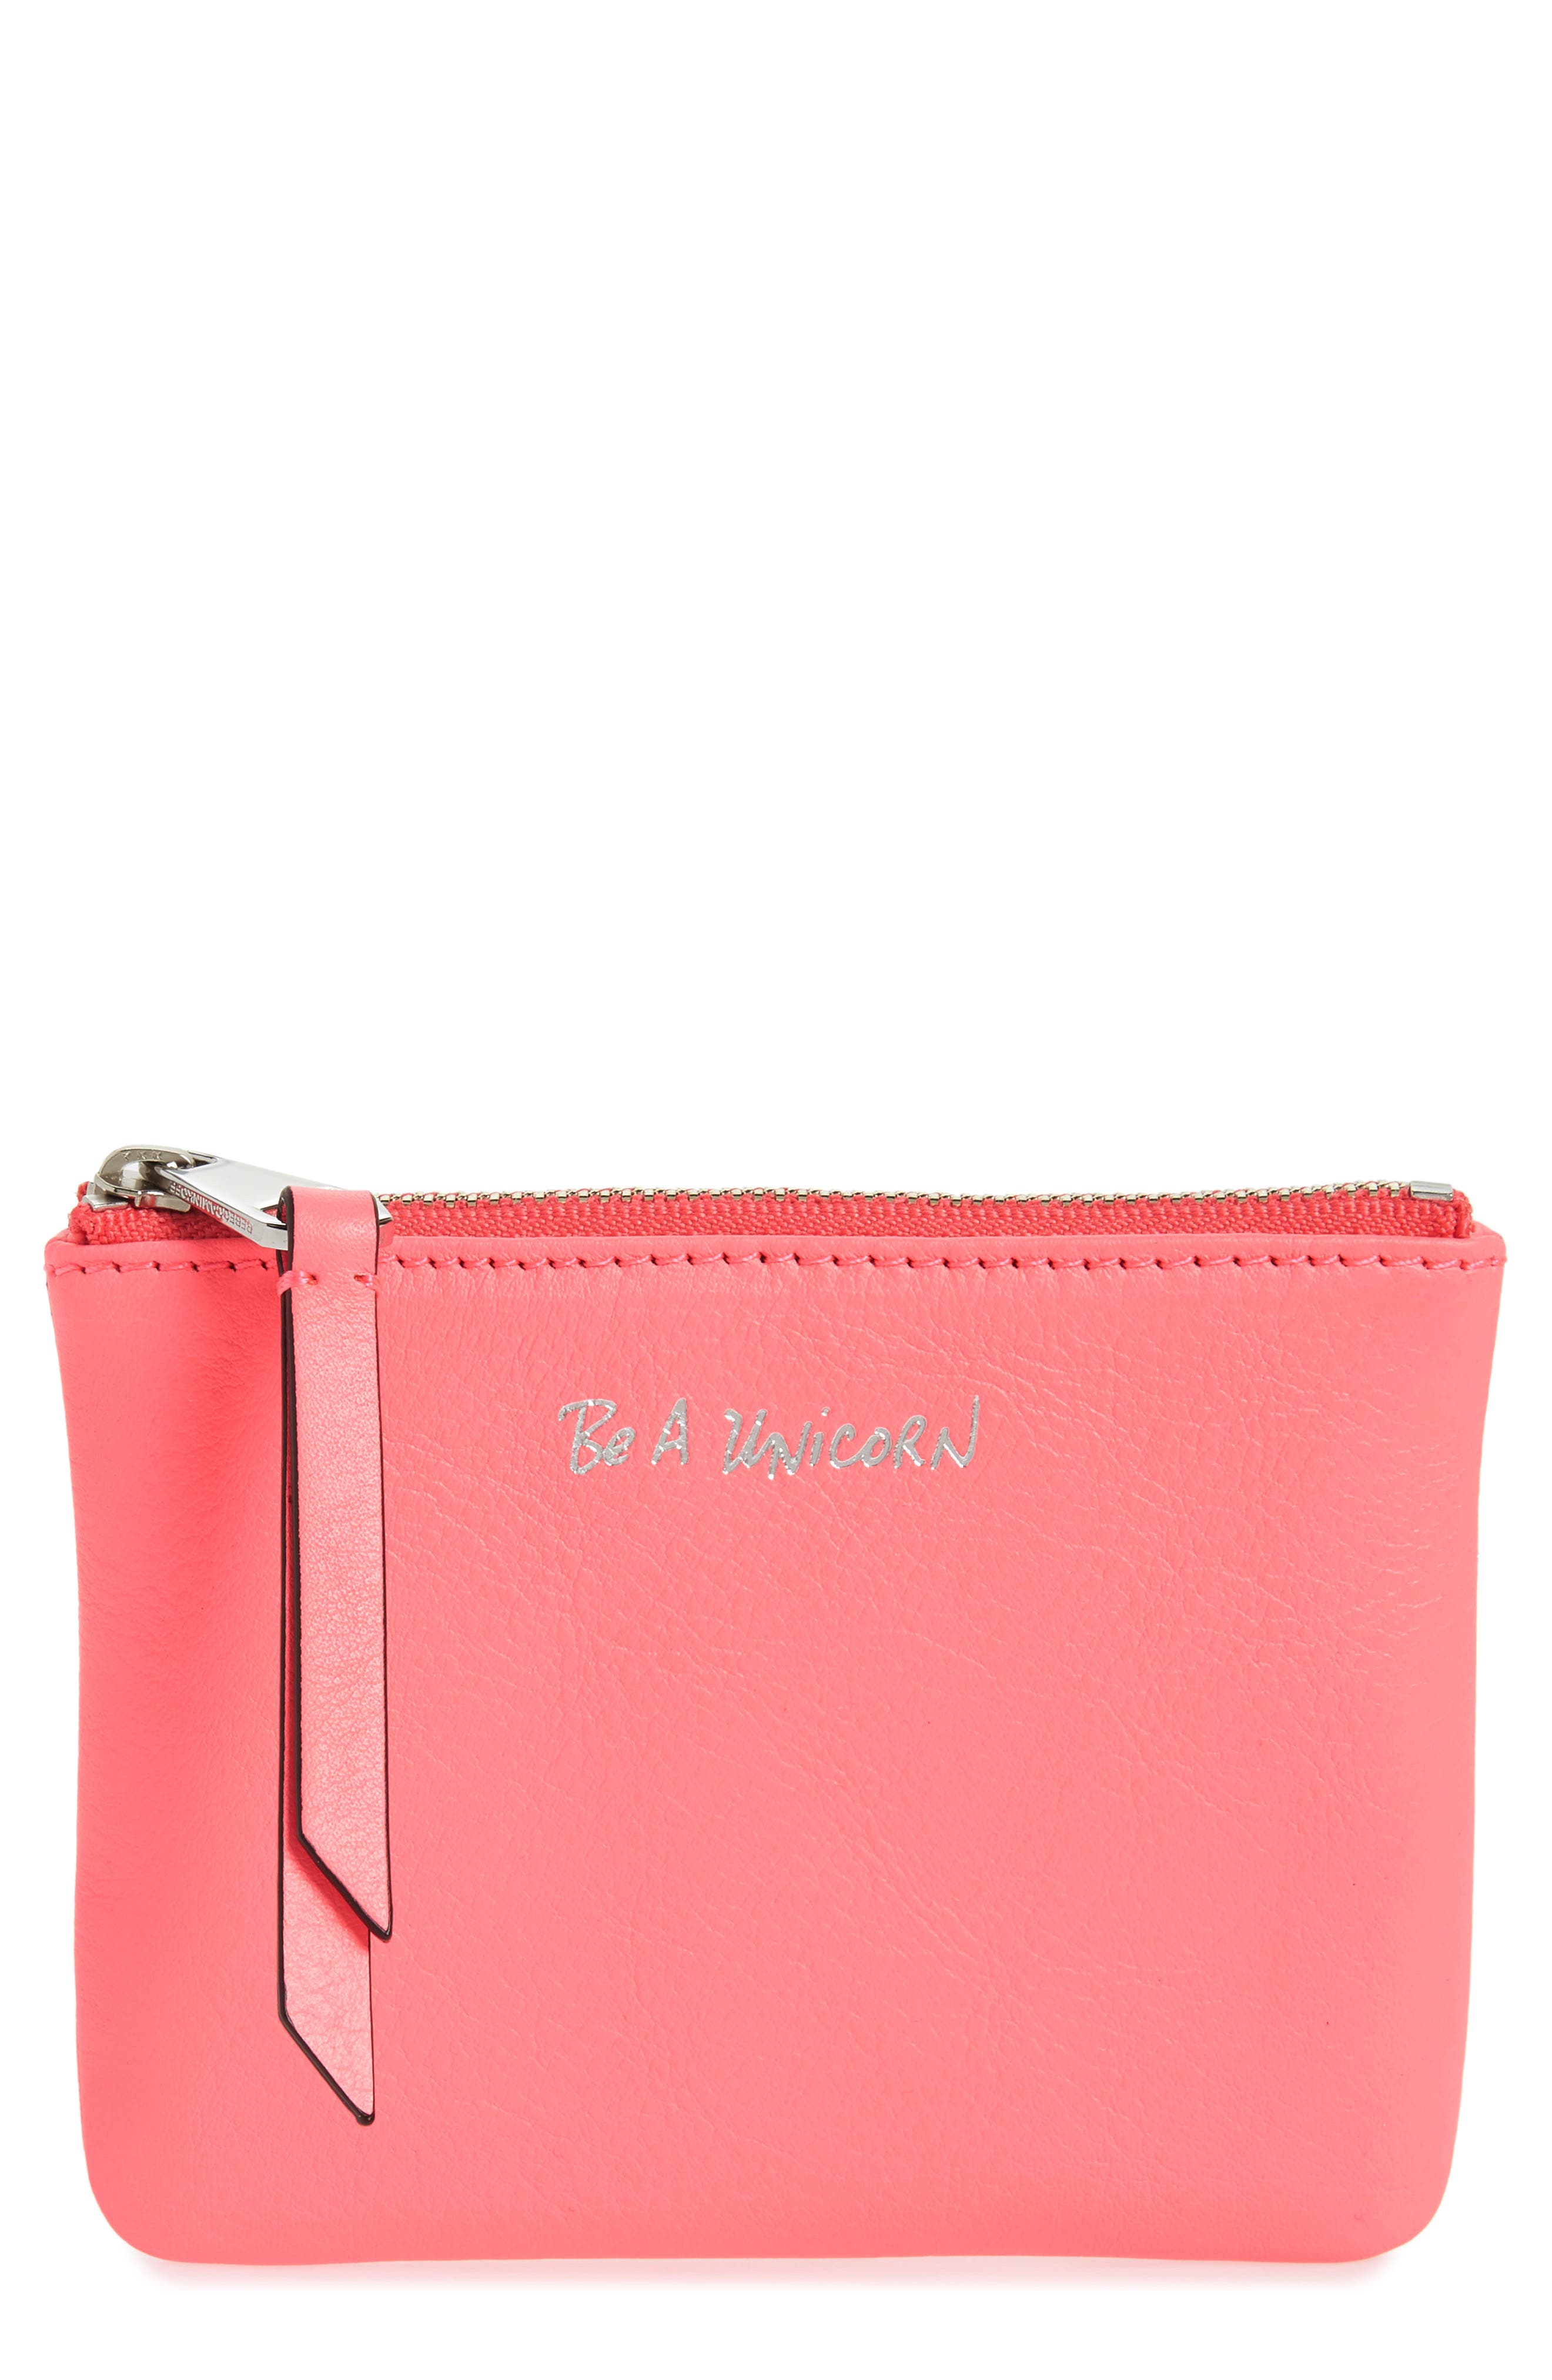 Betty - Be a Unicorn Leather Pouch,                             Main thumbnail 1, color,